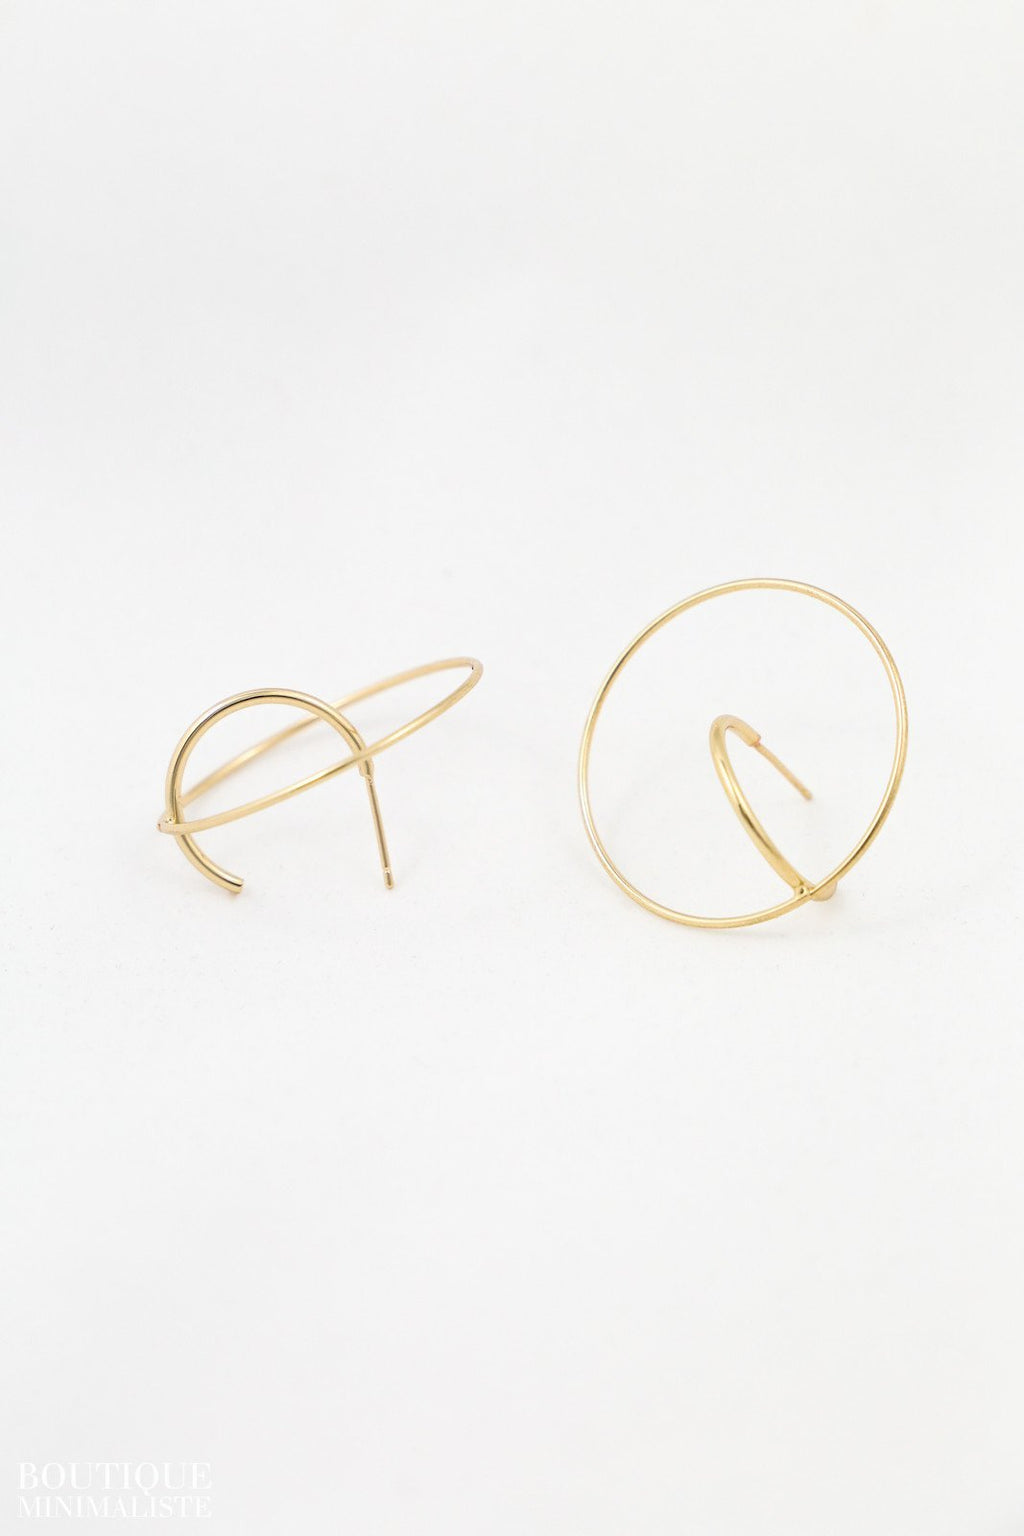 Uncommon Hoops - Boutique Minimaliste